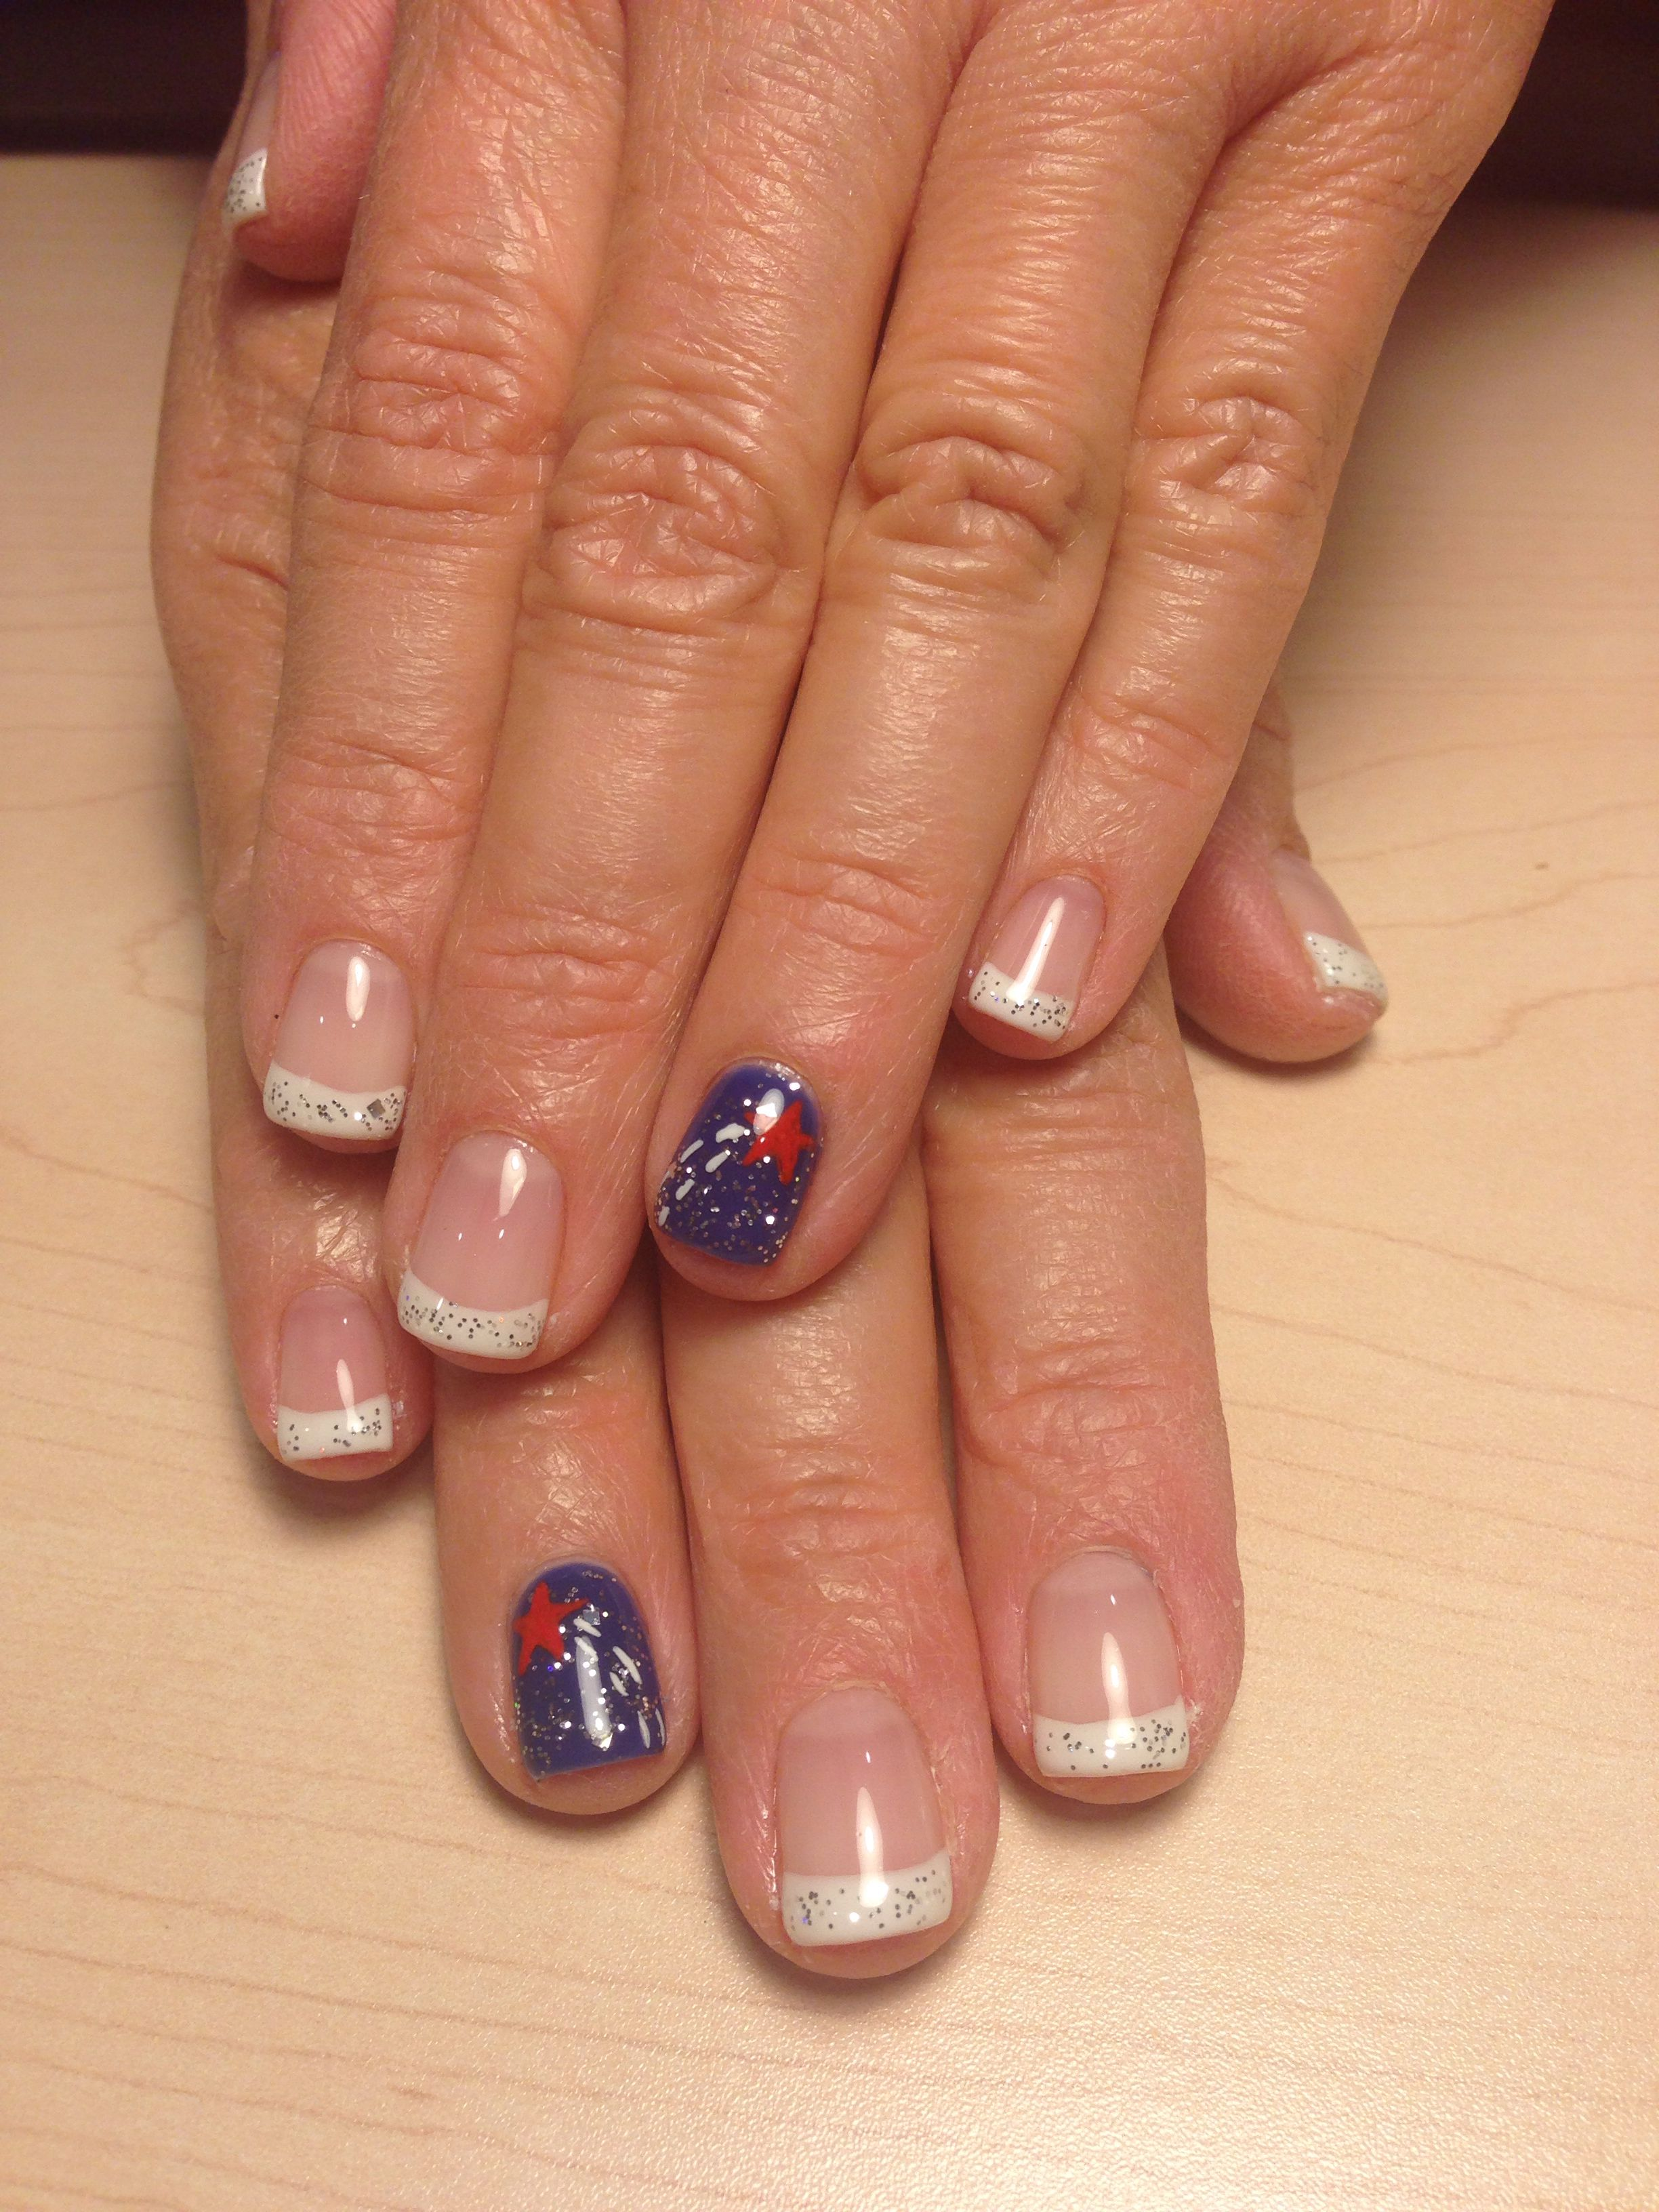 Utah: patriotic French manicure with a sparkly blue accent nail